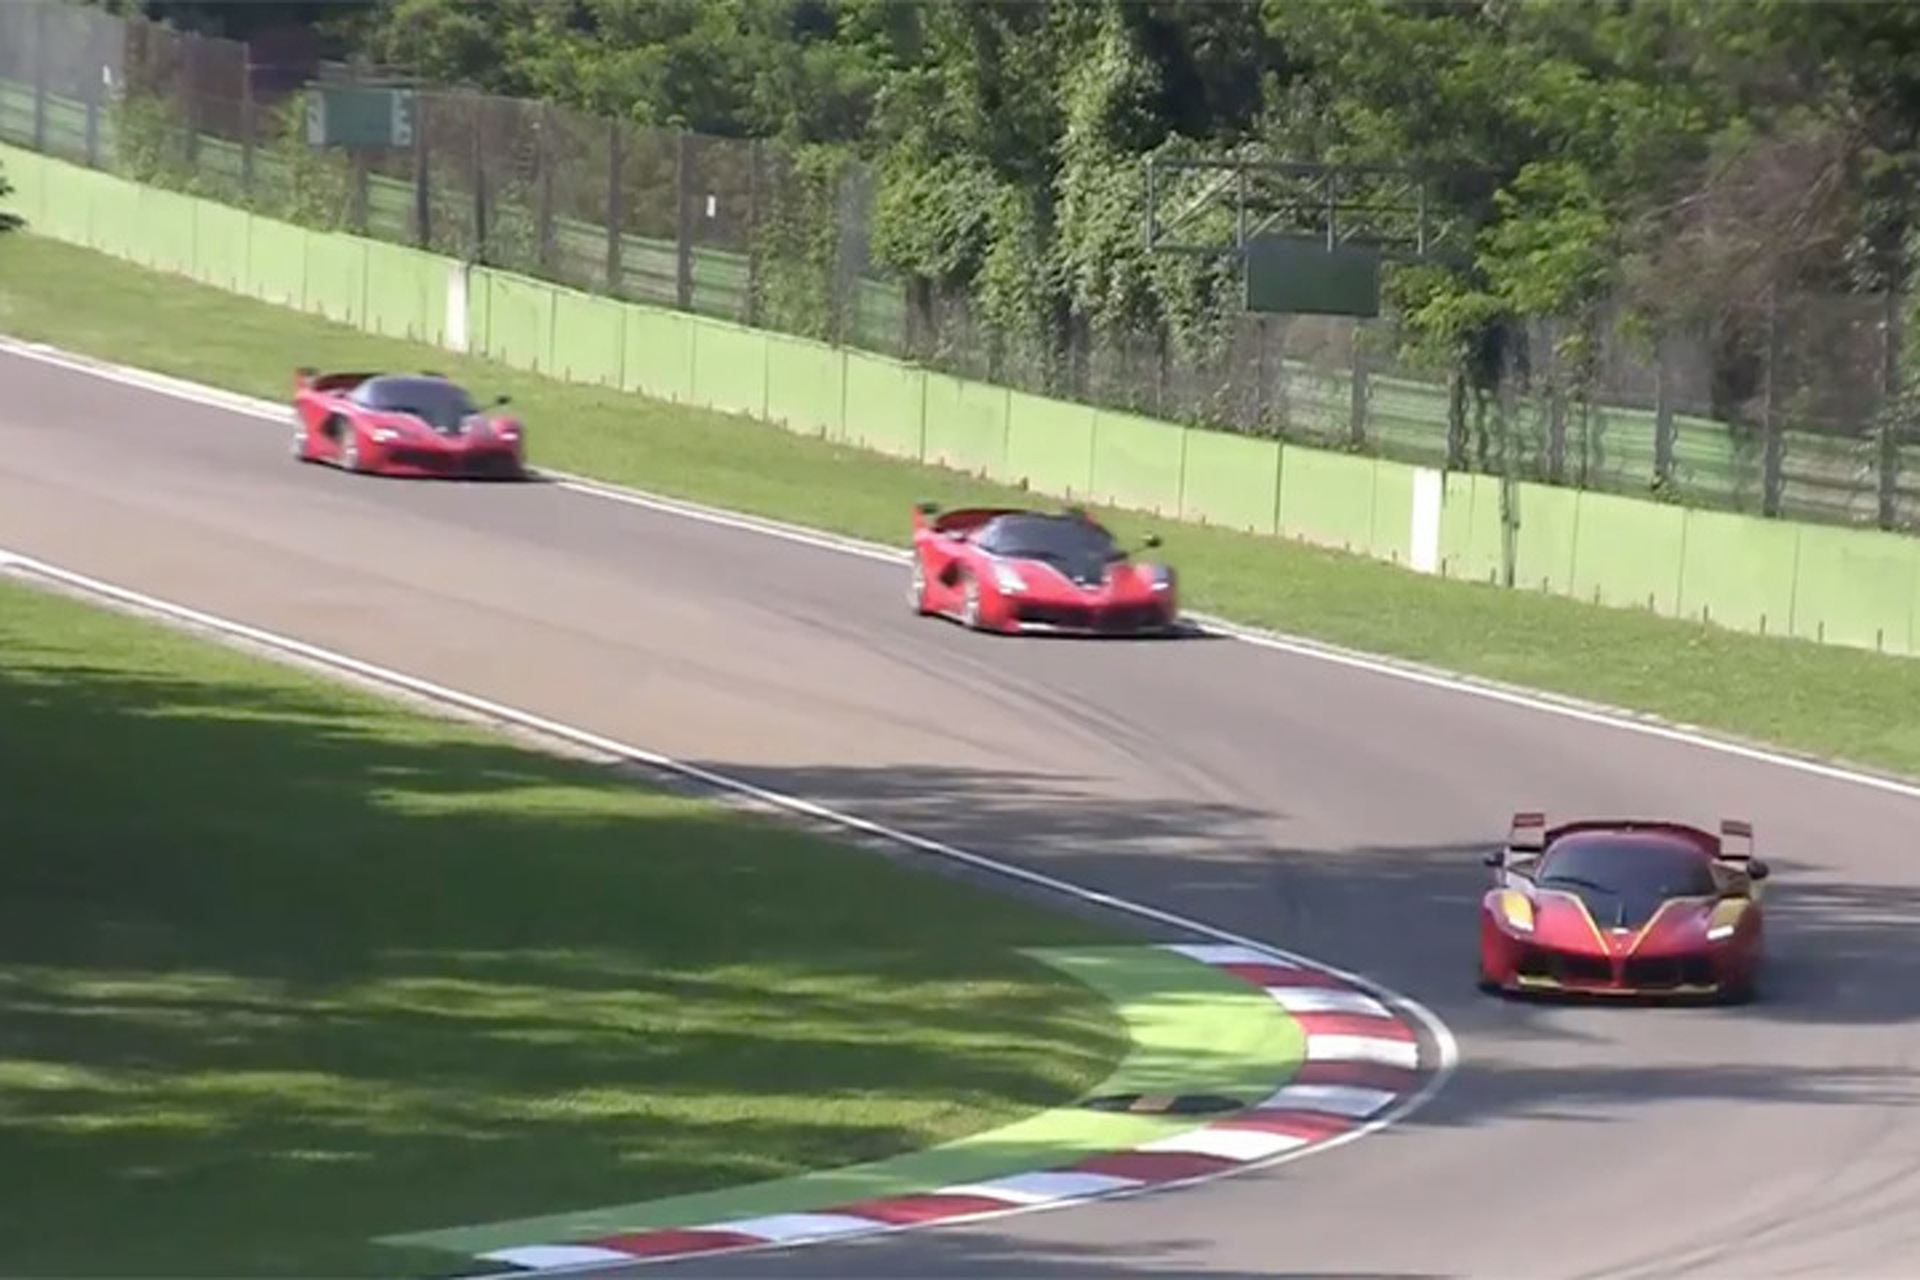 Watch Four $2.7 Million Ferrari FXXK Hypercars Roar on Track